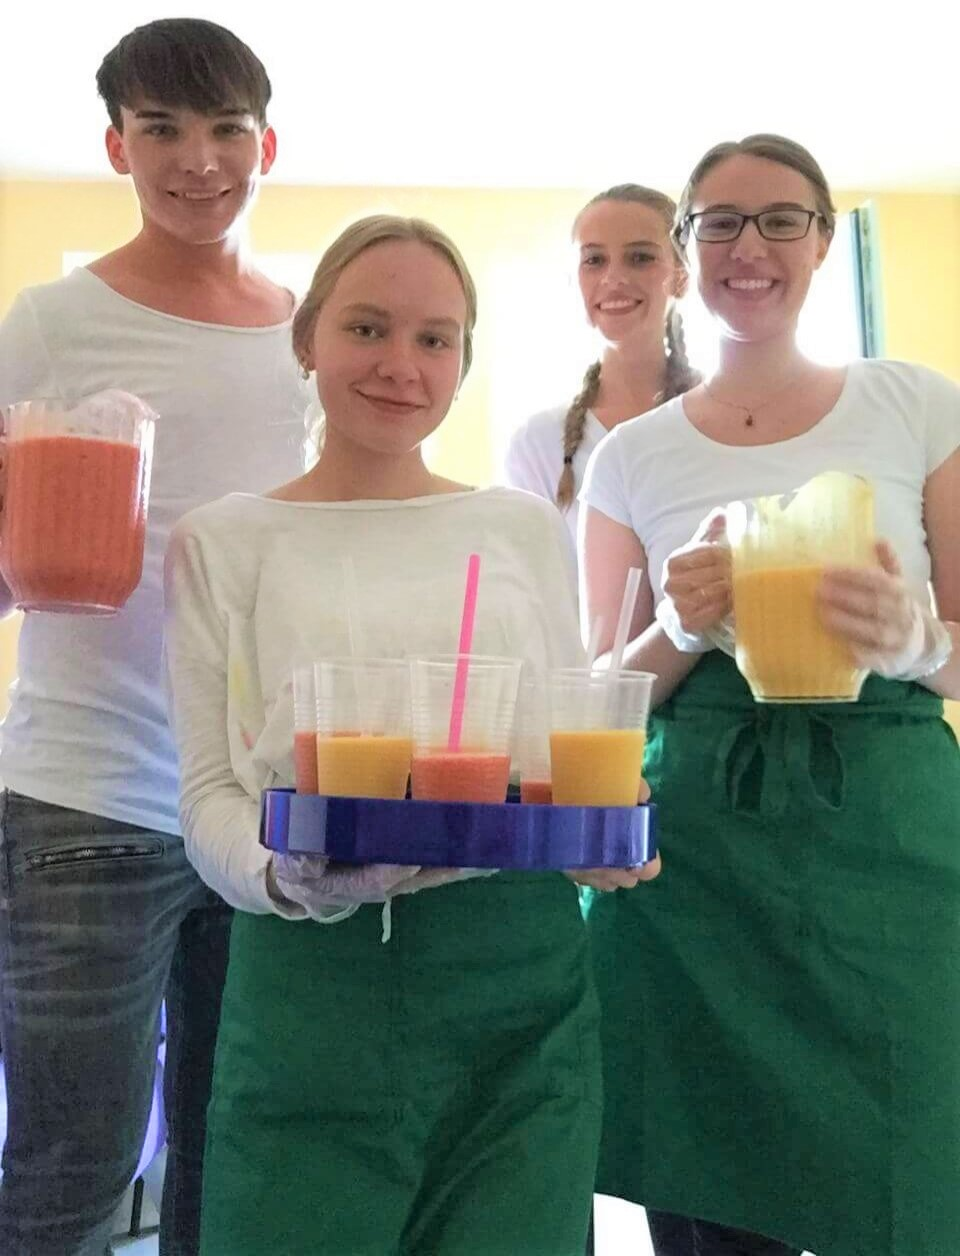 Employees of the Andreas Mohn Foundation present freshly mixed smoothies